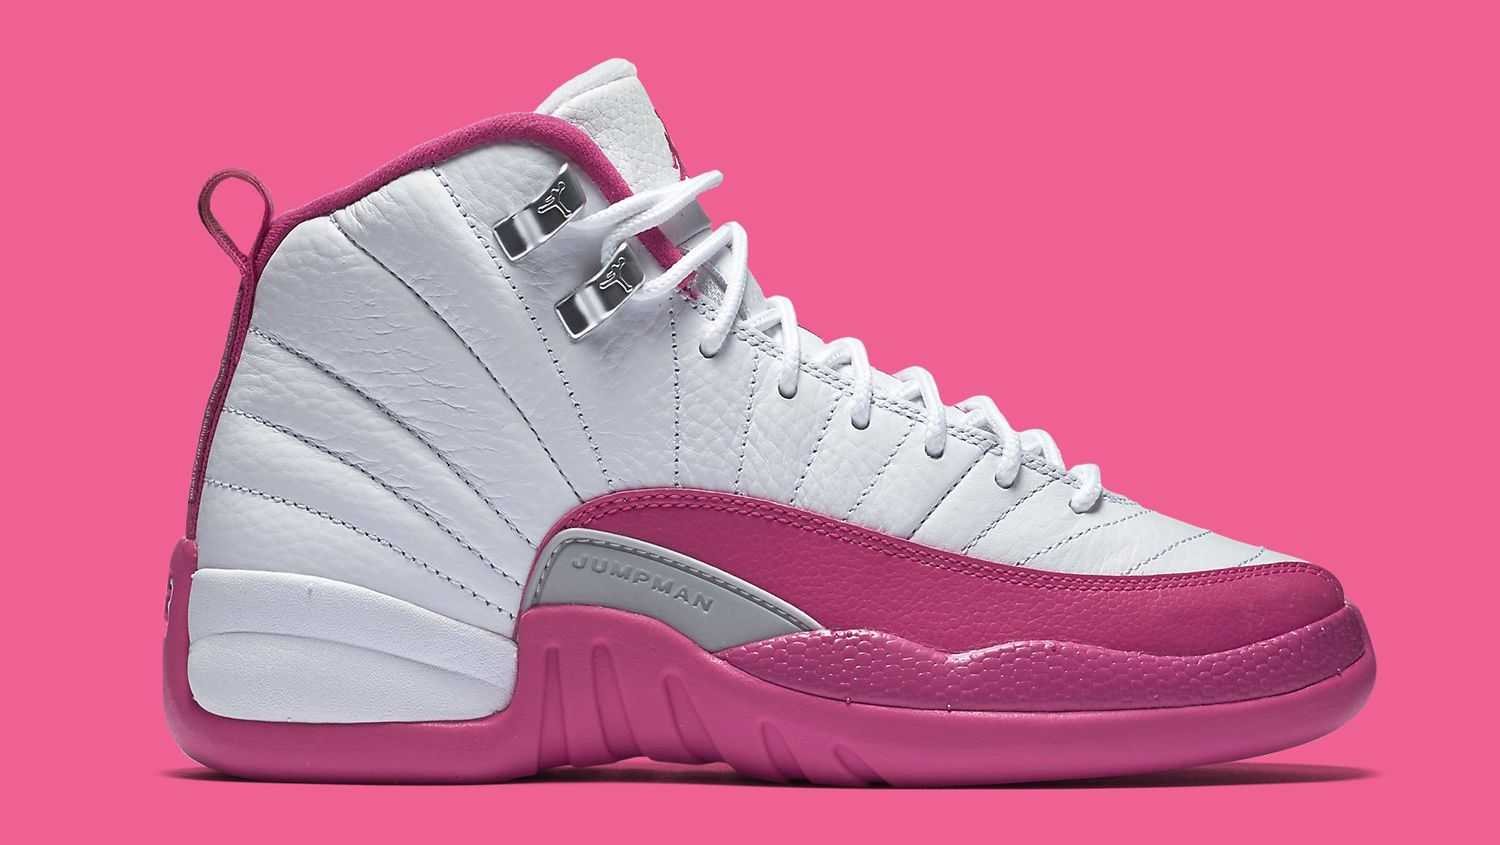 0db76b0999115f Jordans Coming Out For Valentines